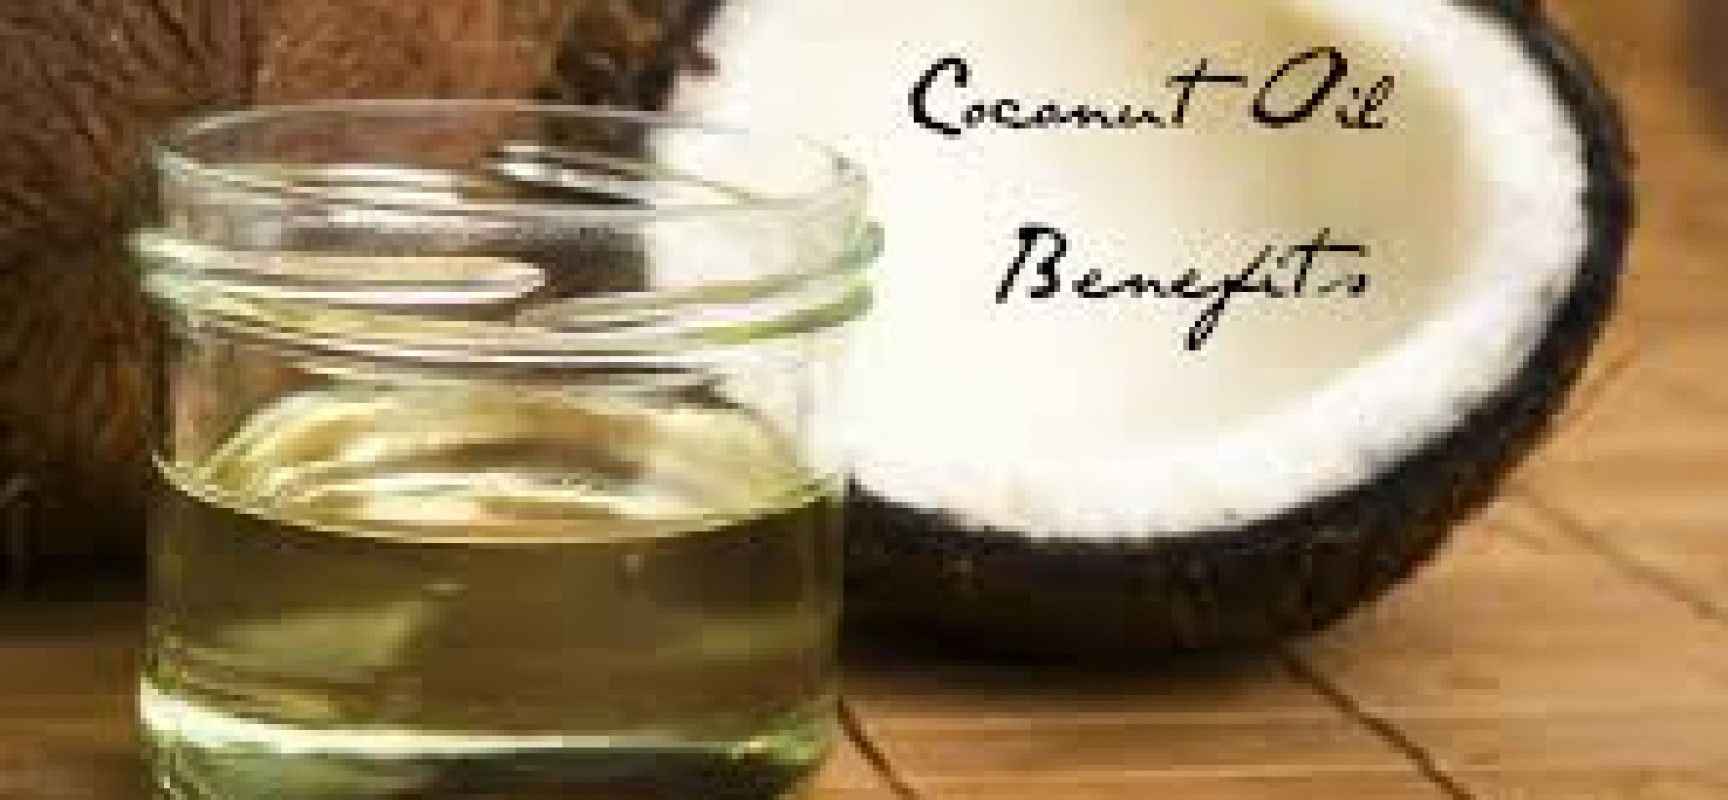 Ten reasons why we should use coconut oil